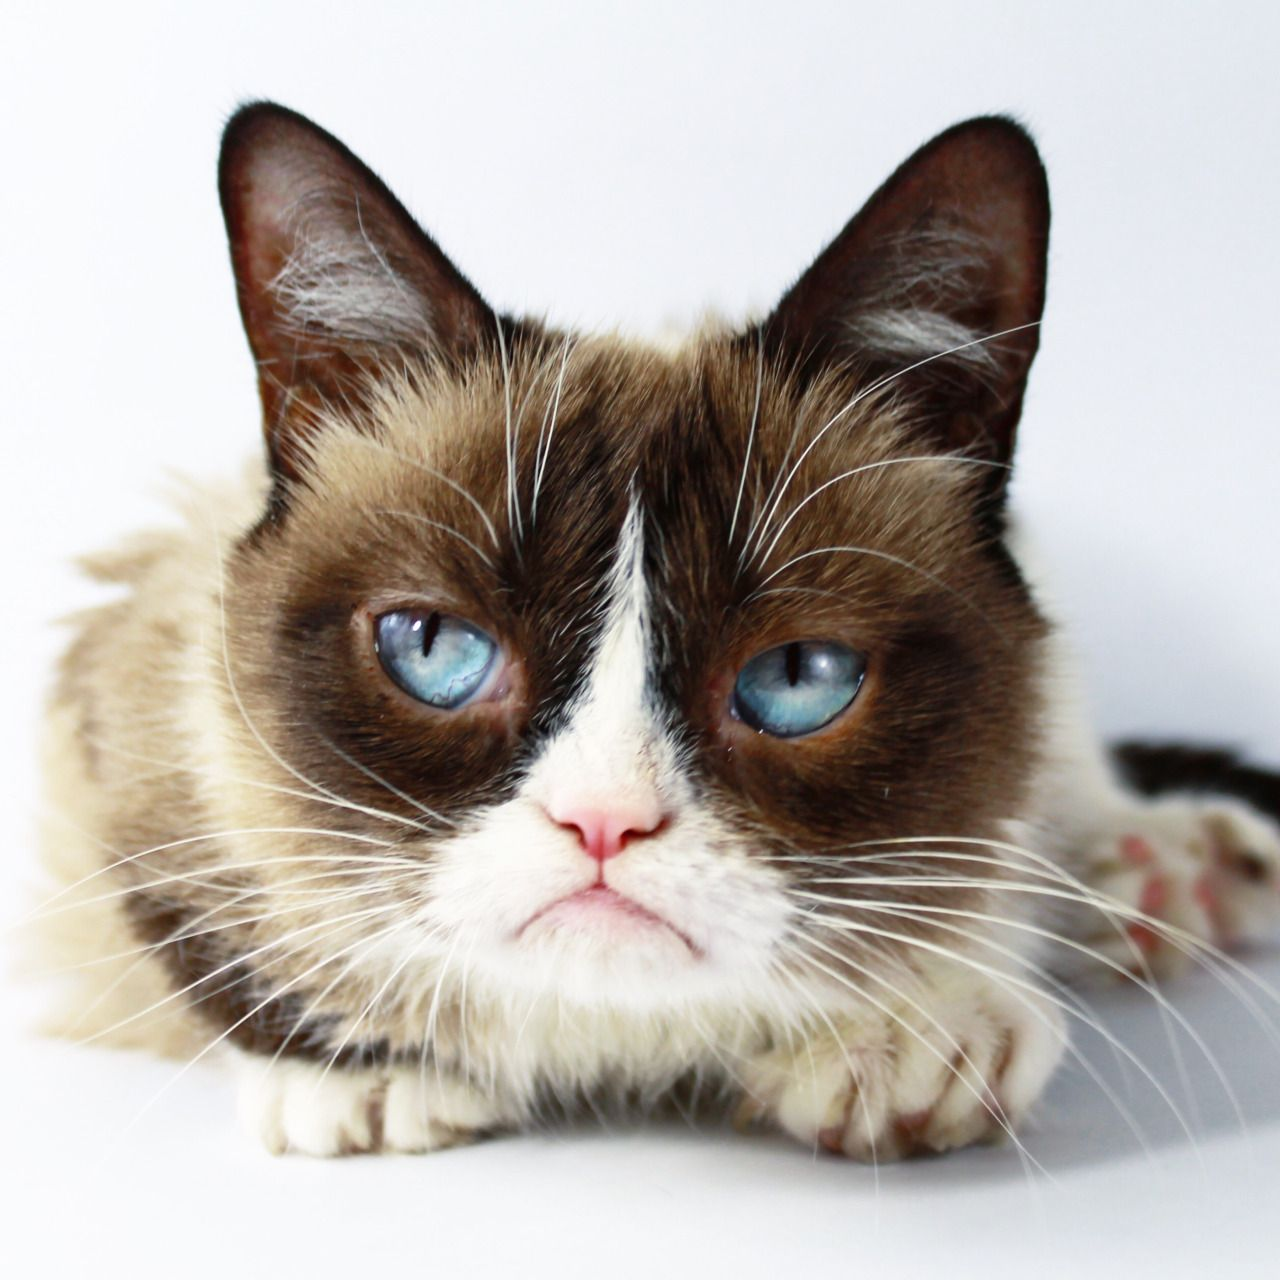 In order to remember the viral legend of Grumpy Cat, we've put together a list of the best memes to celebrate her life.